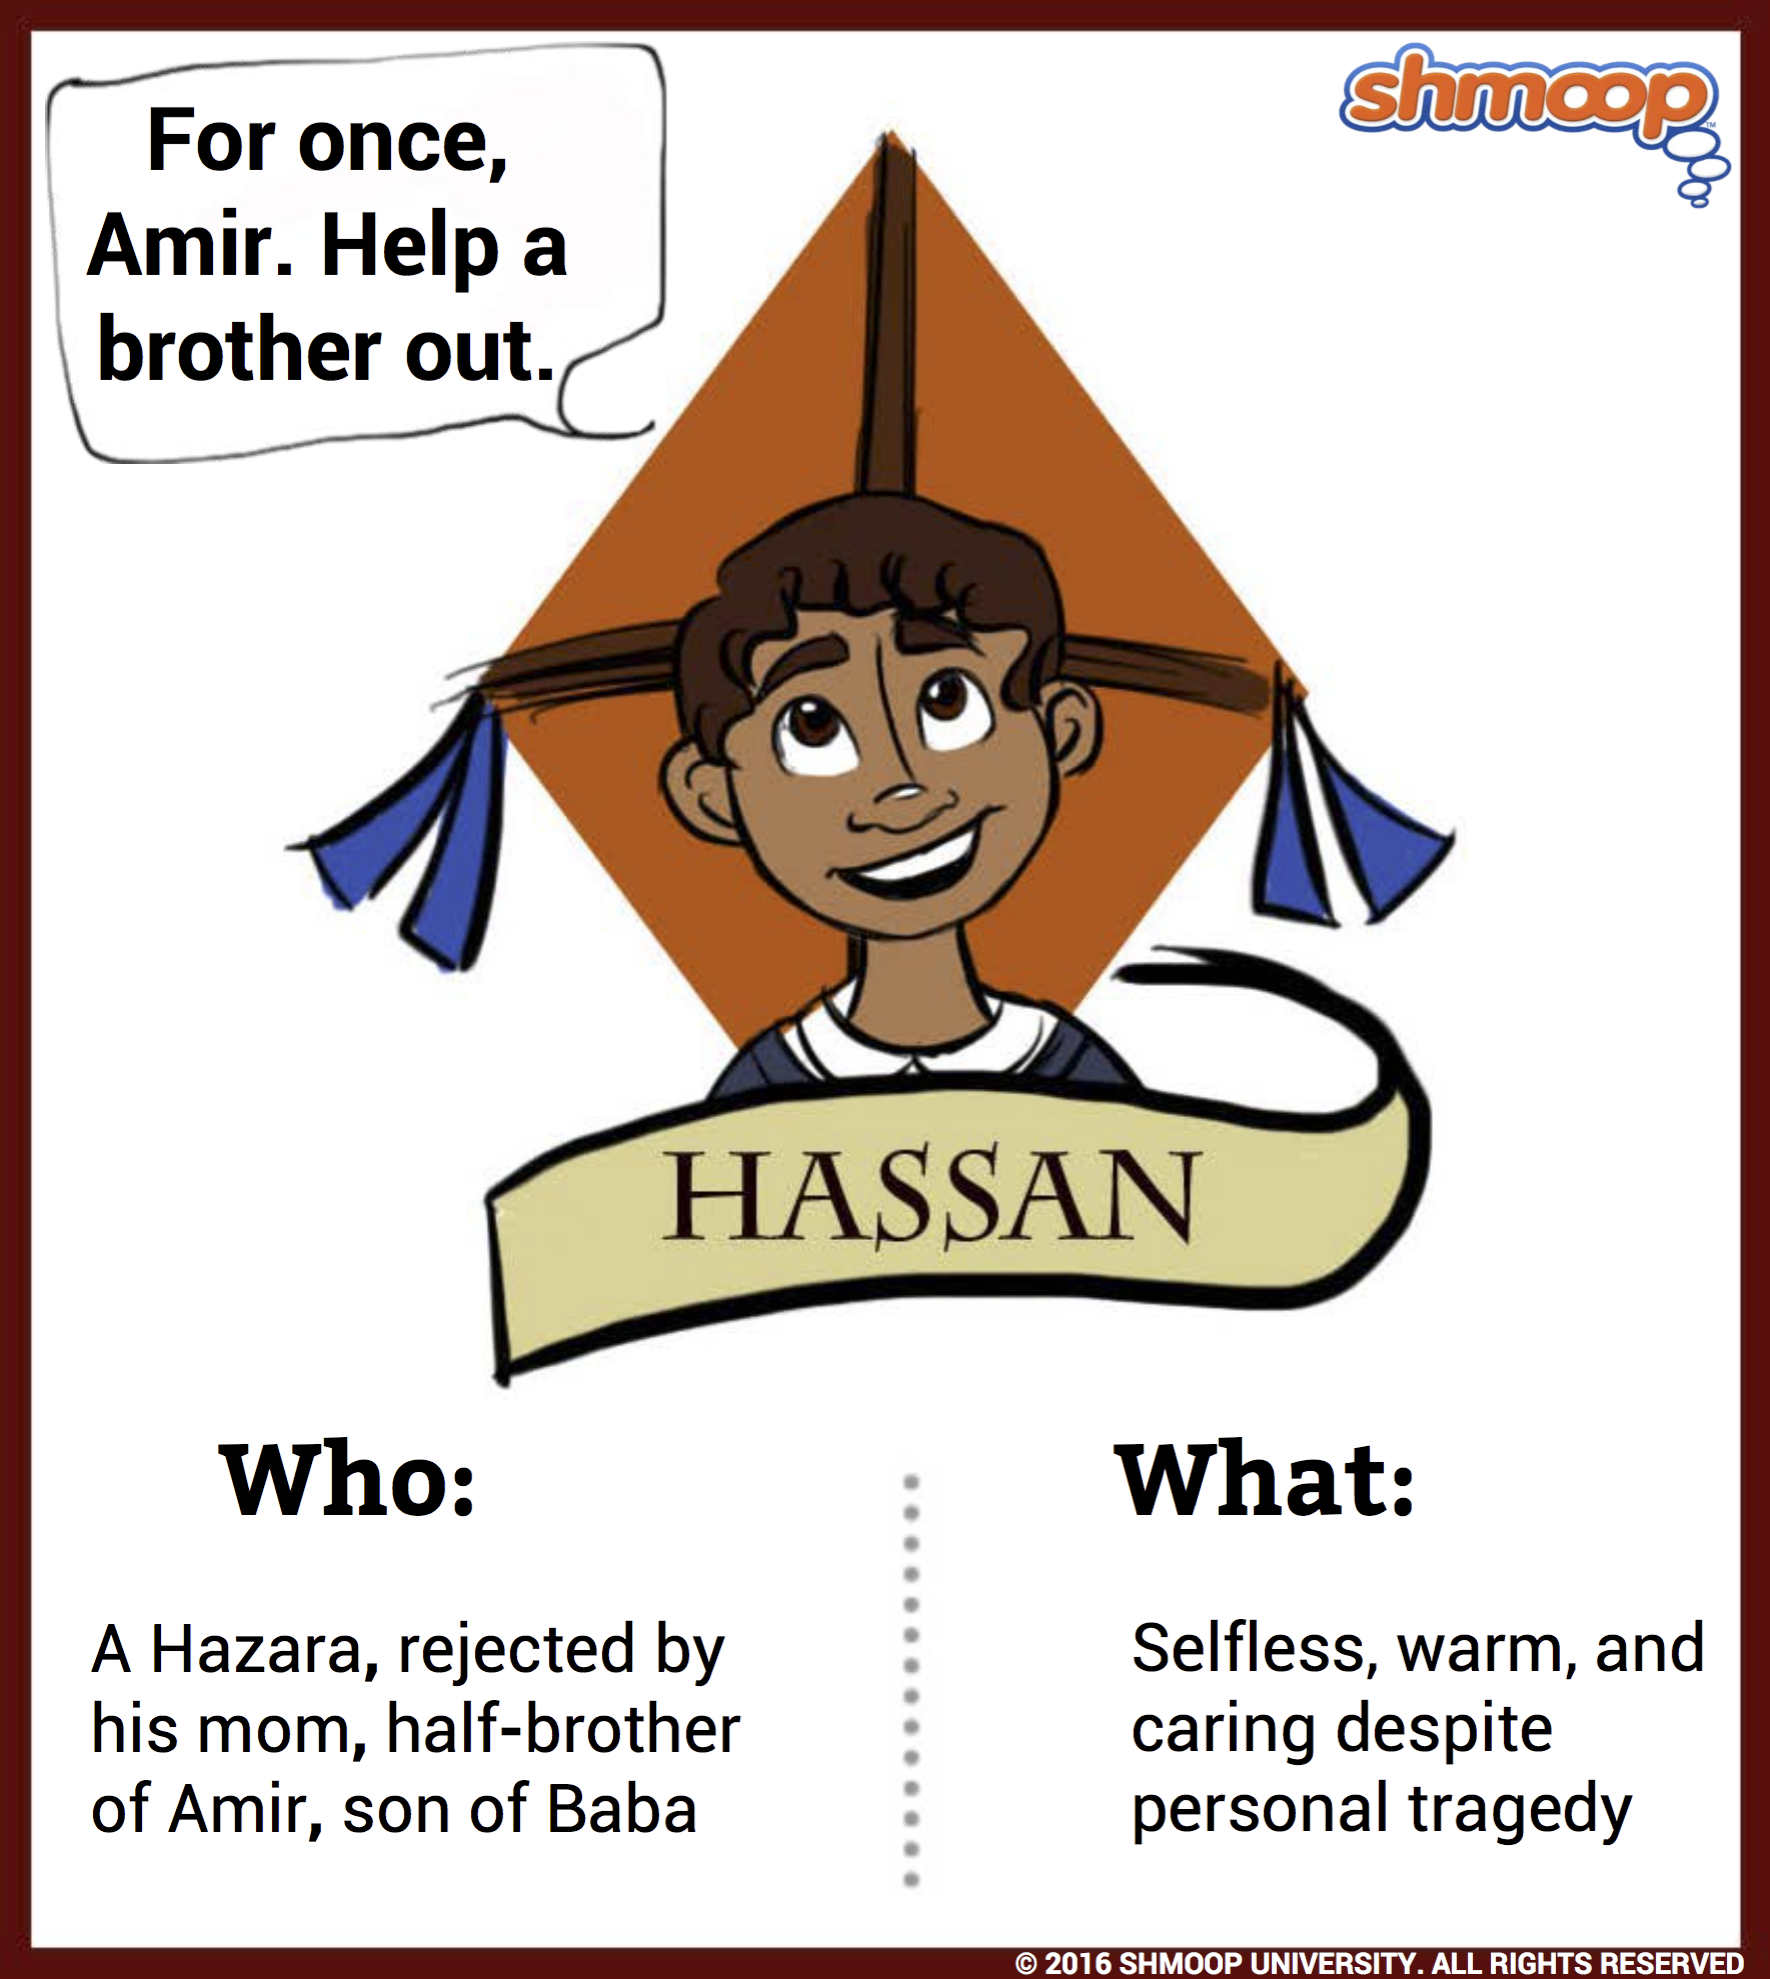 kite runner conflict essay A list of important facts about khaled hosseini's the kite runner, including setting, climax, protagonists, and antagonists.